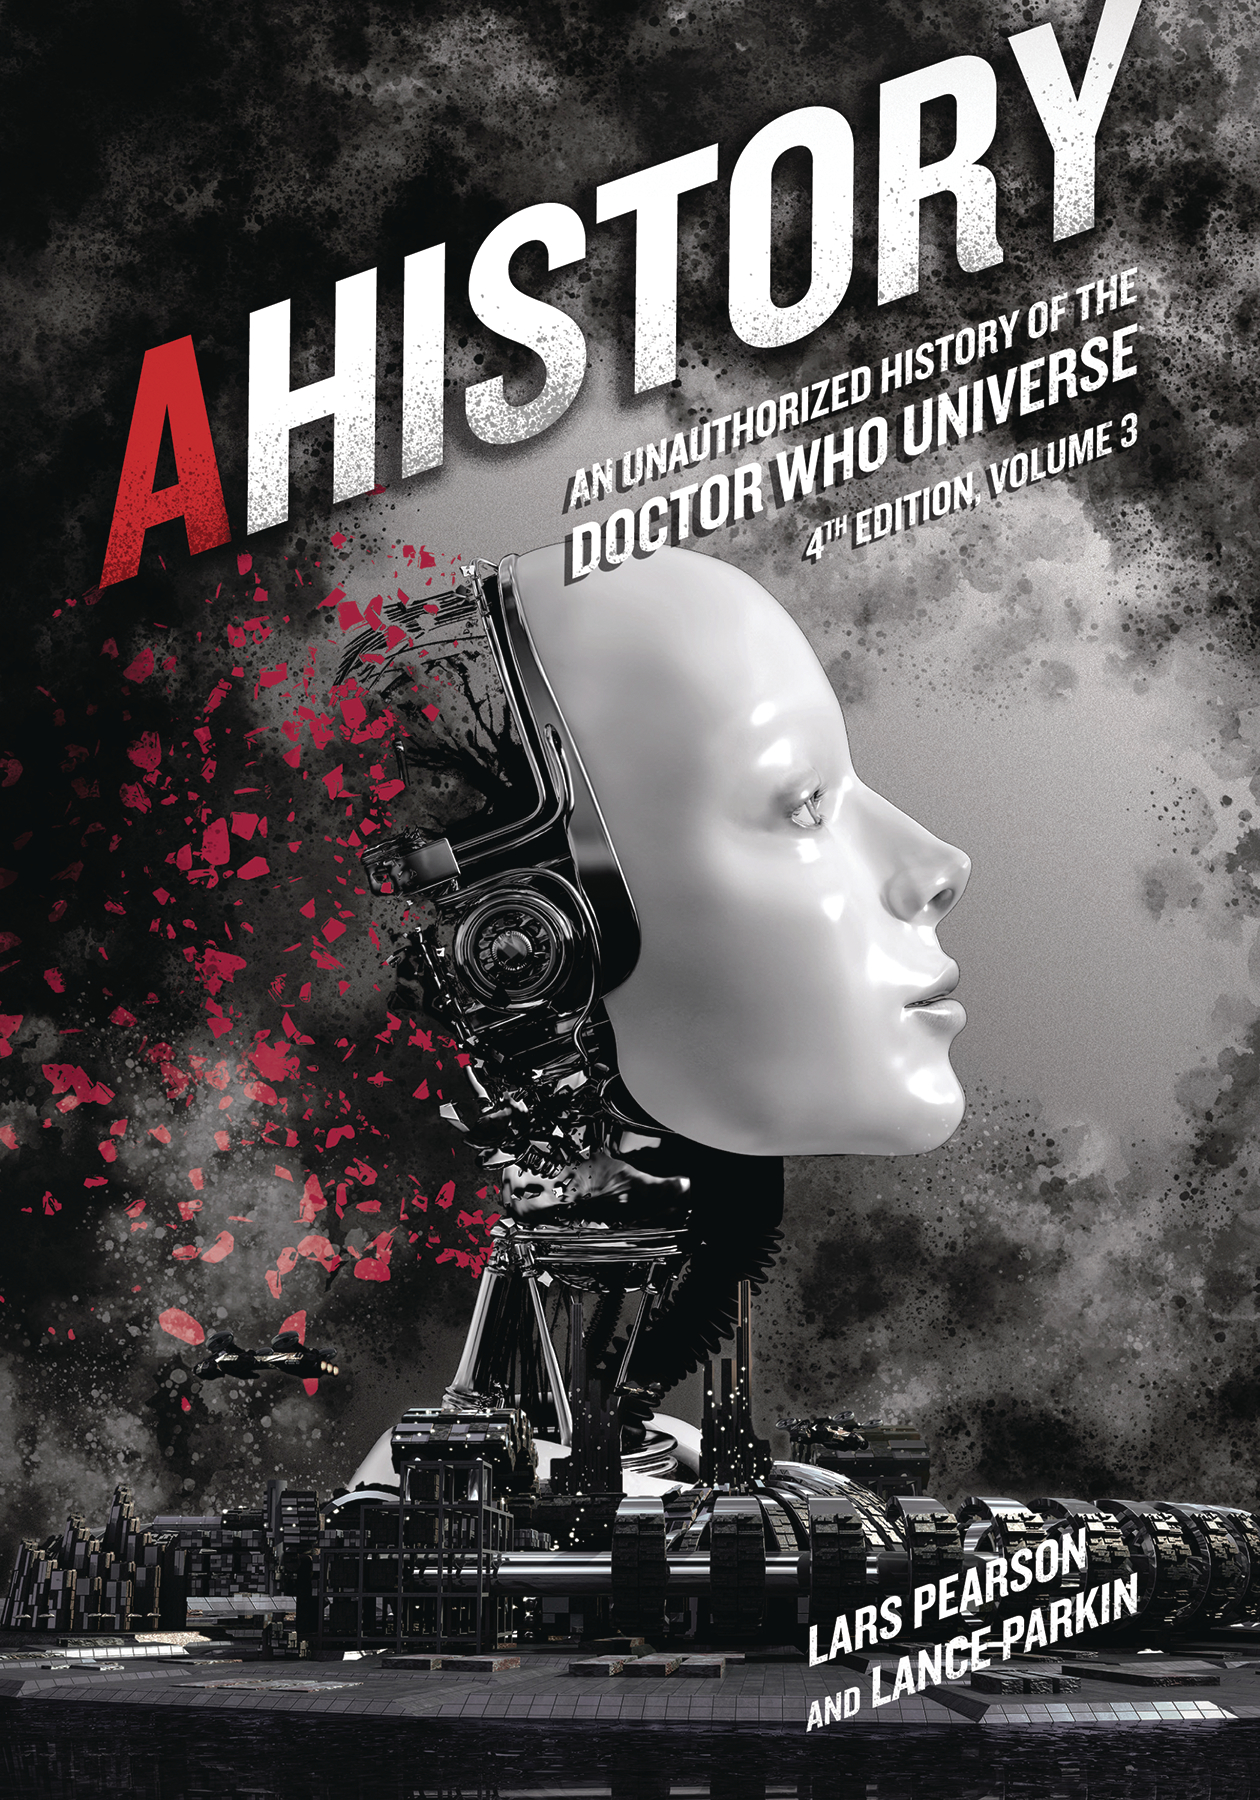 AHISTORY UNAUTH HIST OF DOCTOR WHO UNIVERSE 4TH ED VOL 03 (C